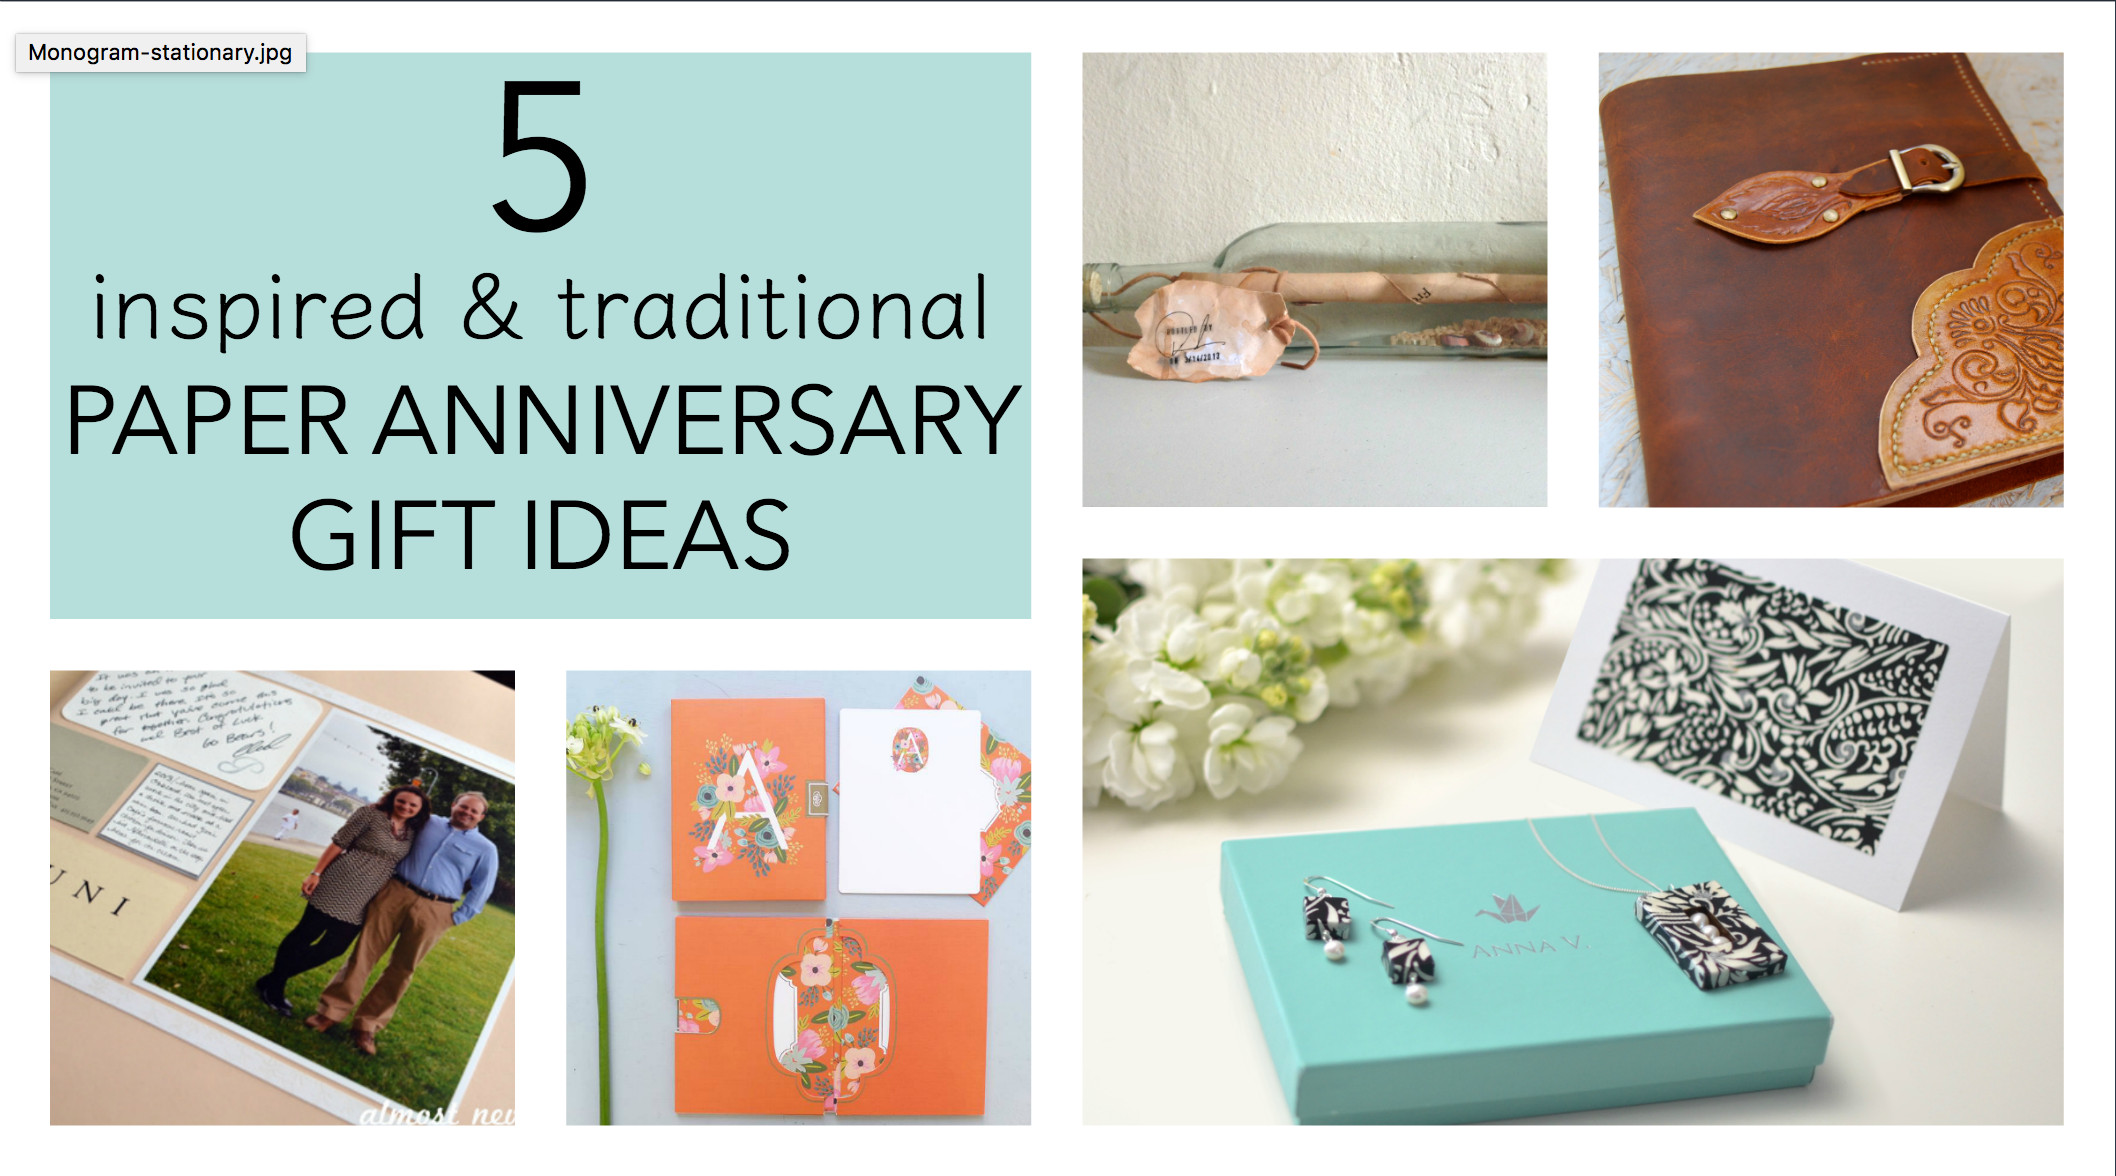 First Anniversary Gift Ideas For Her  5 Traditional Paper Anniversary Gift Ideas for Her Paper